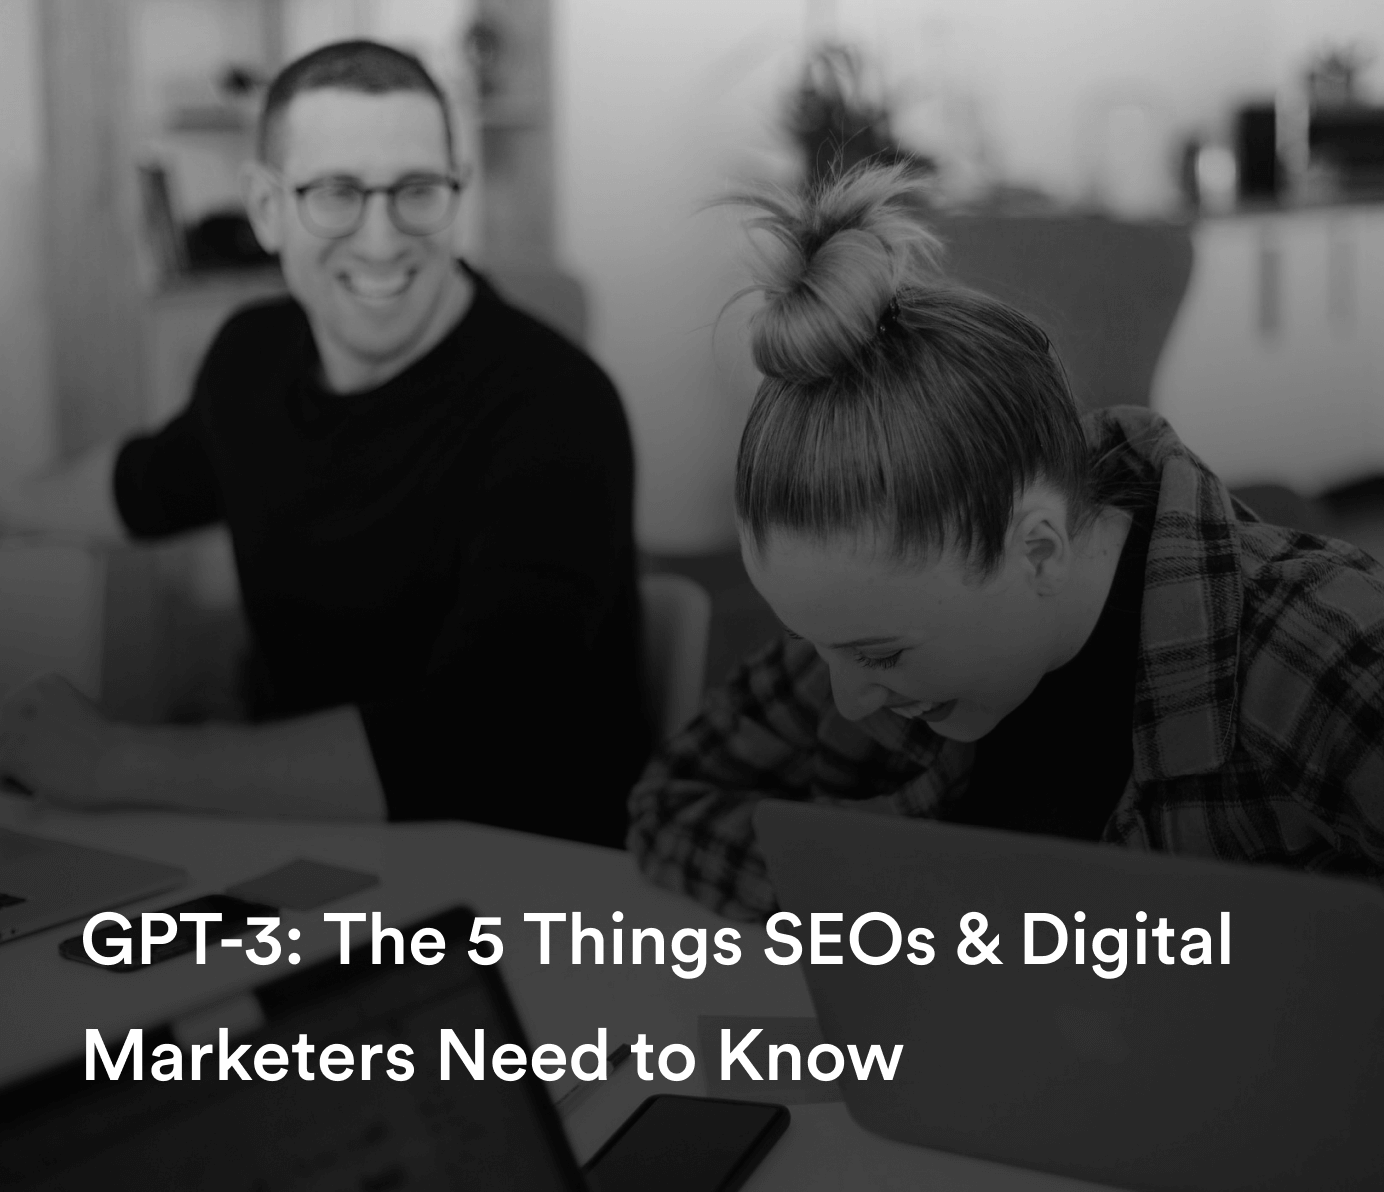 GPT-3: The 5 Things SEOs & Digital Marketers Need to Know